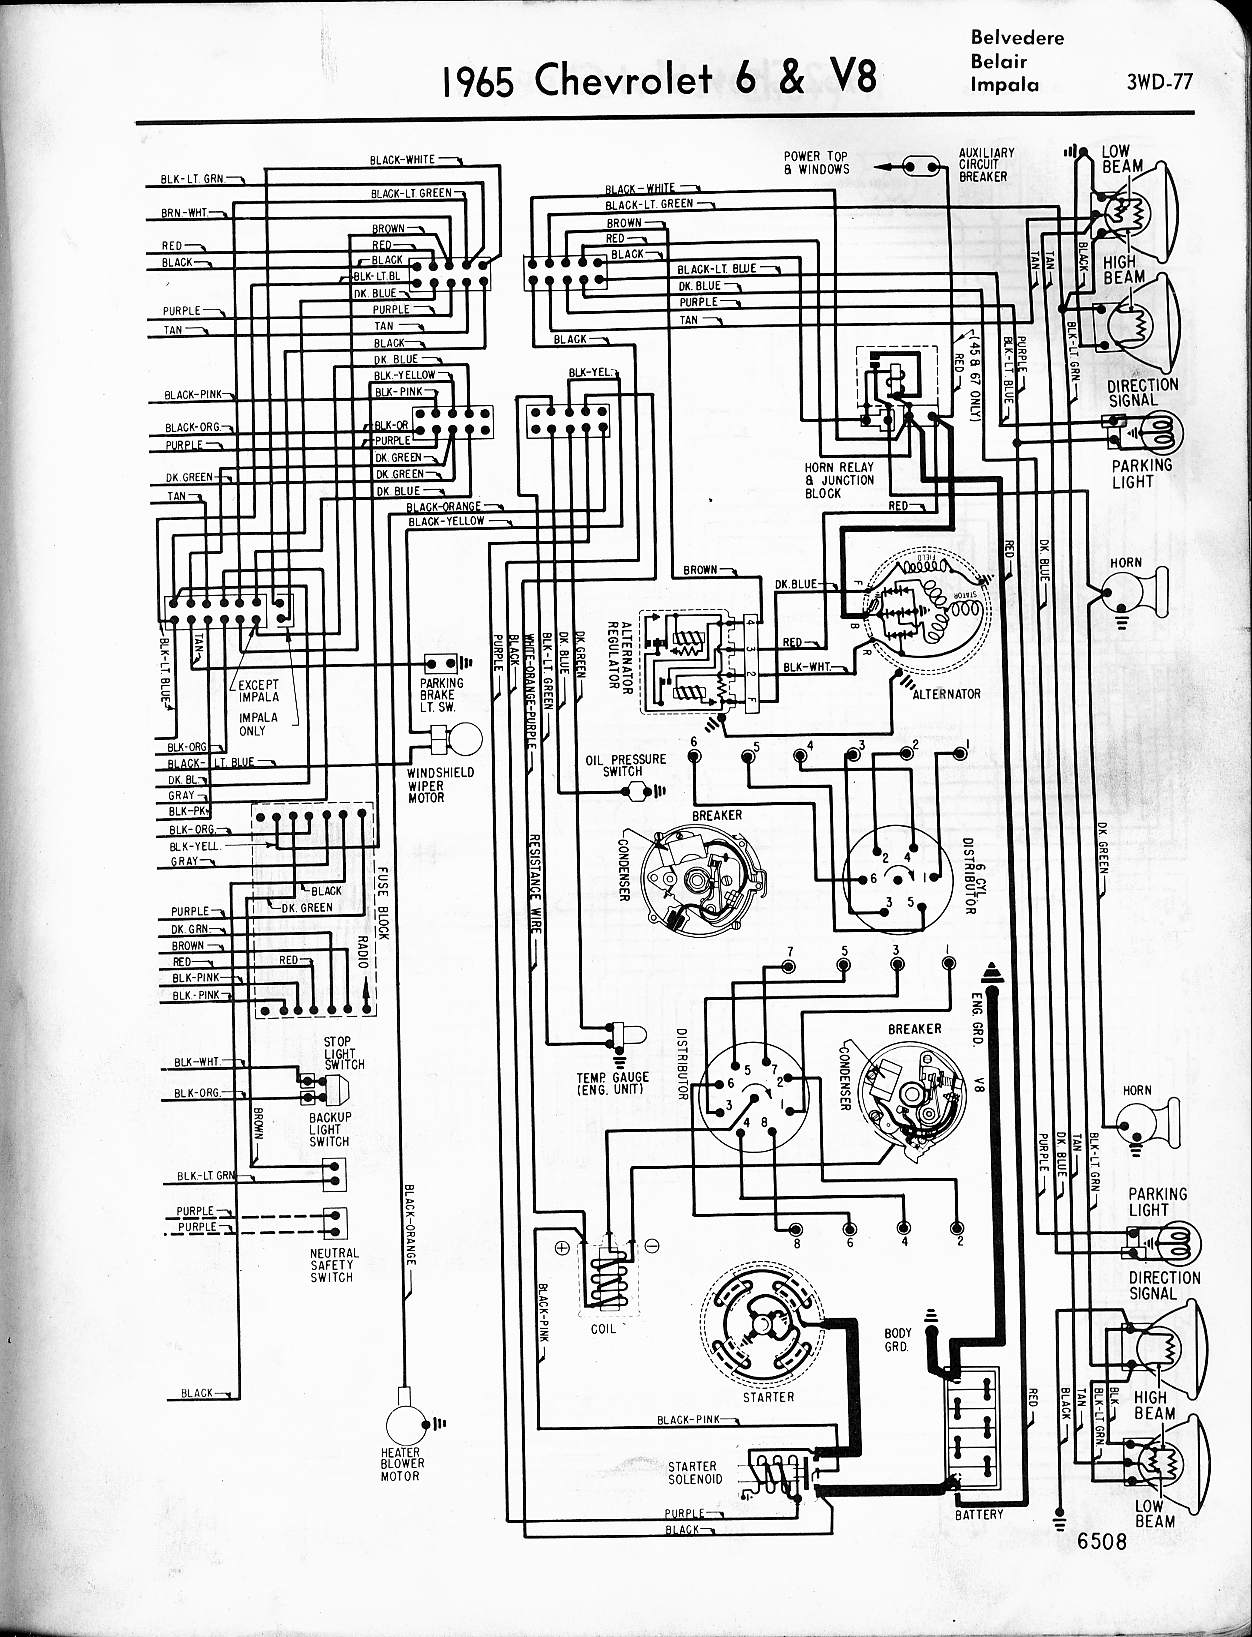 1985 Corvette Headlight Wiring Diagram Chevy Diagrams 1965 Impalla Figure A B